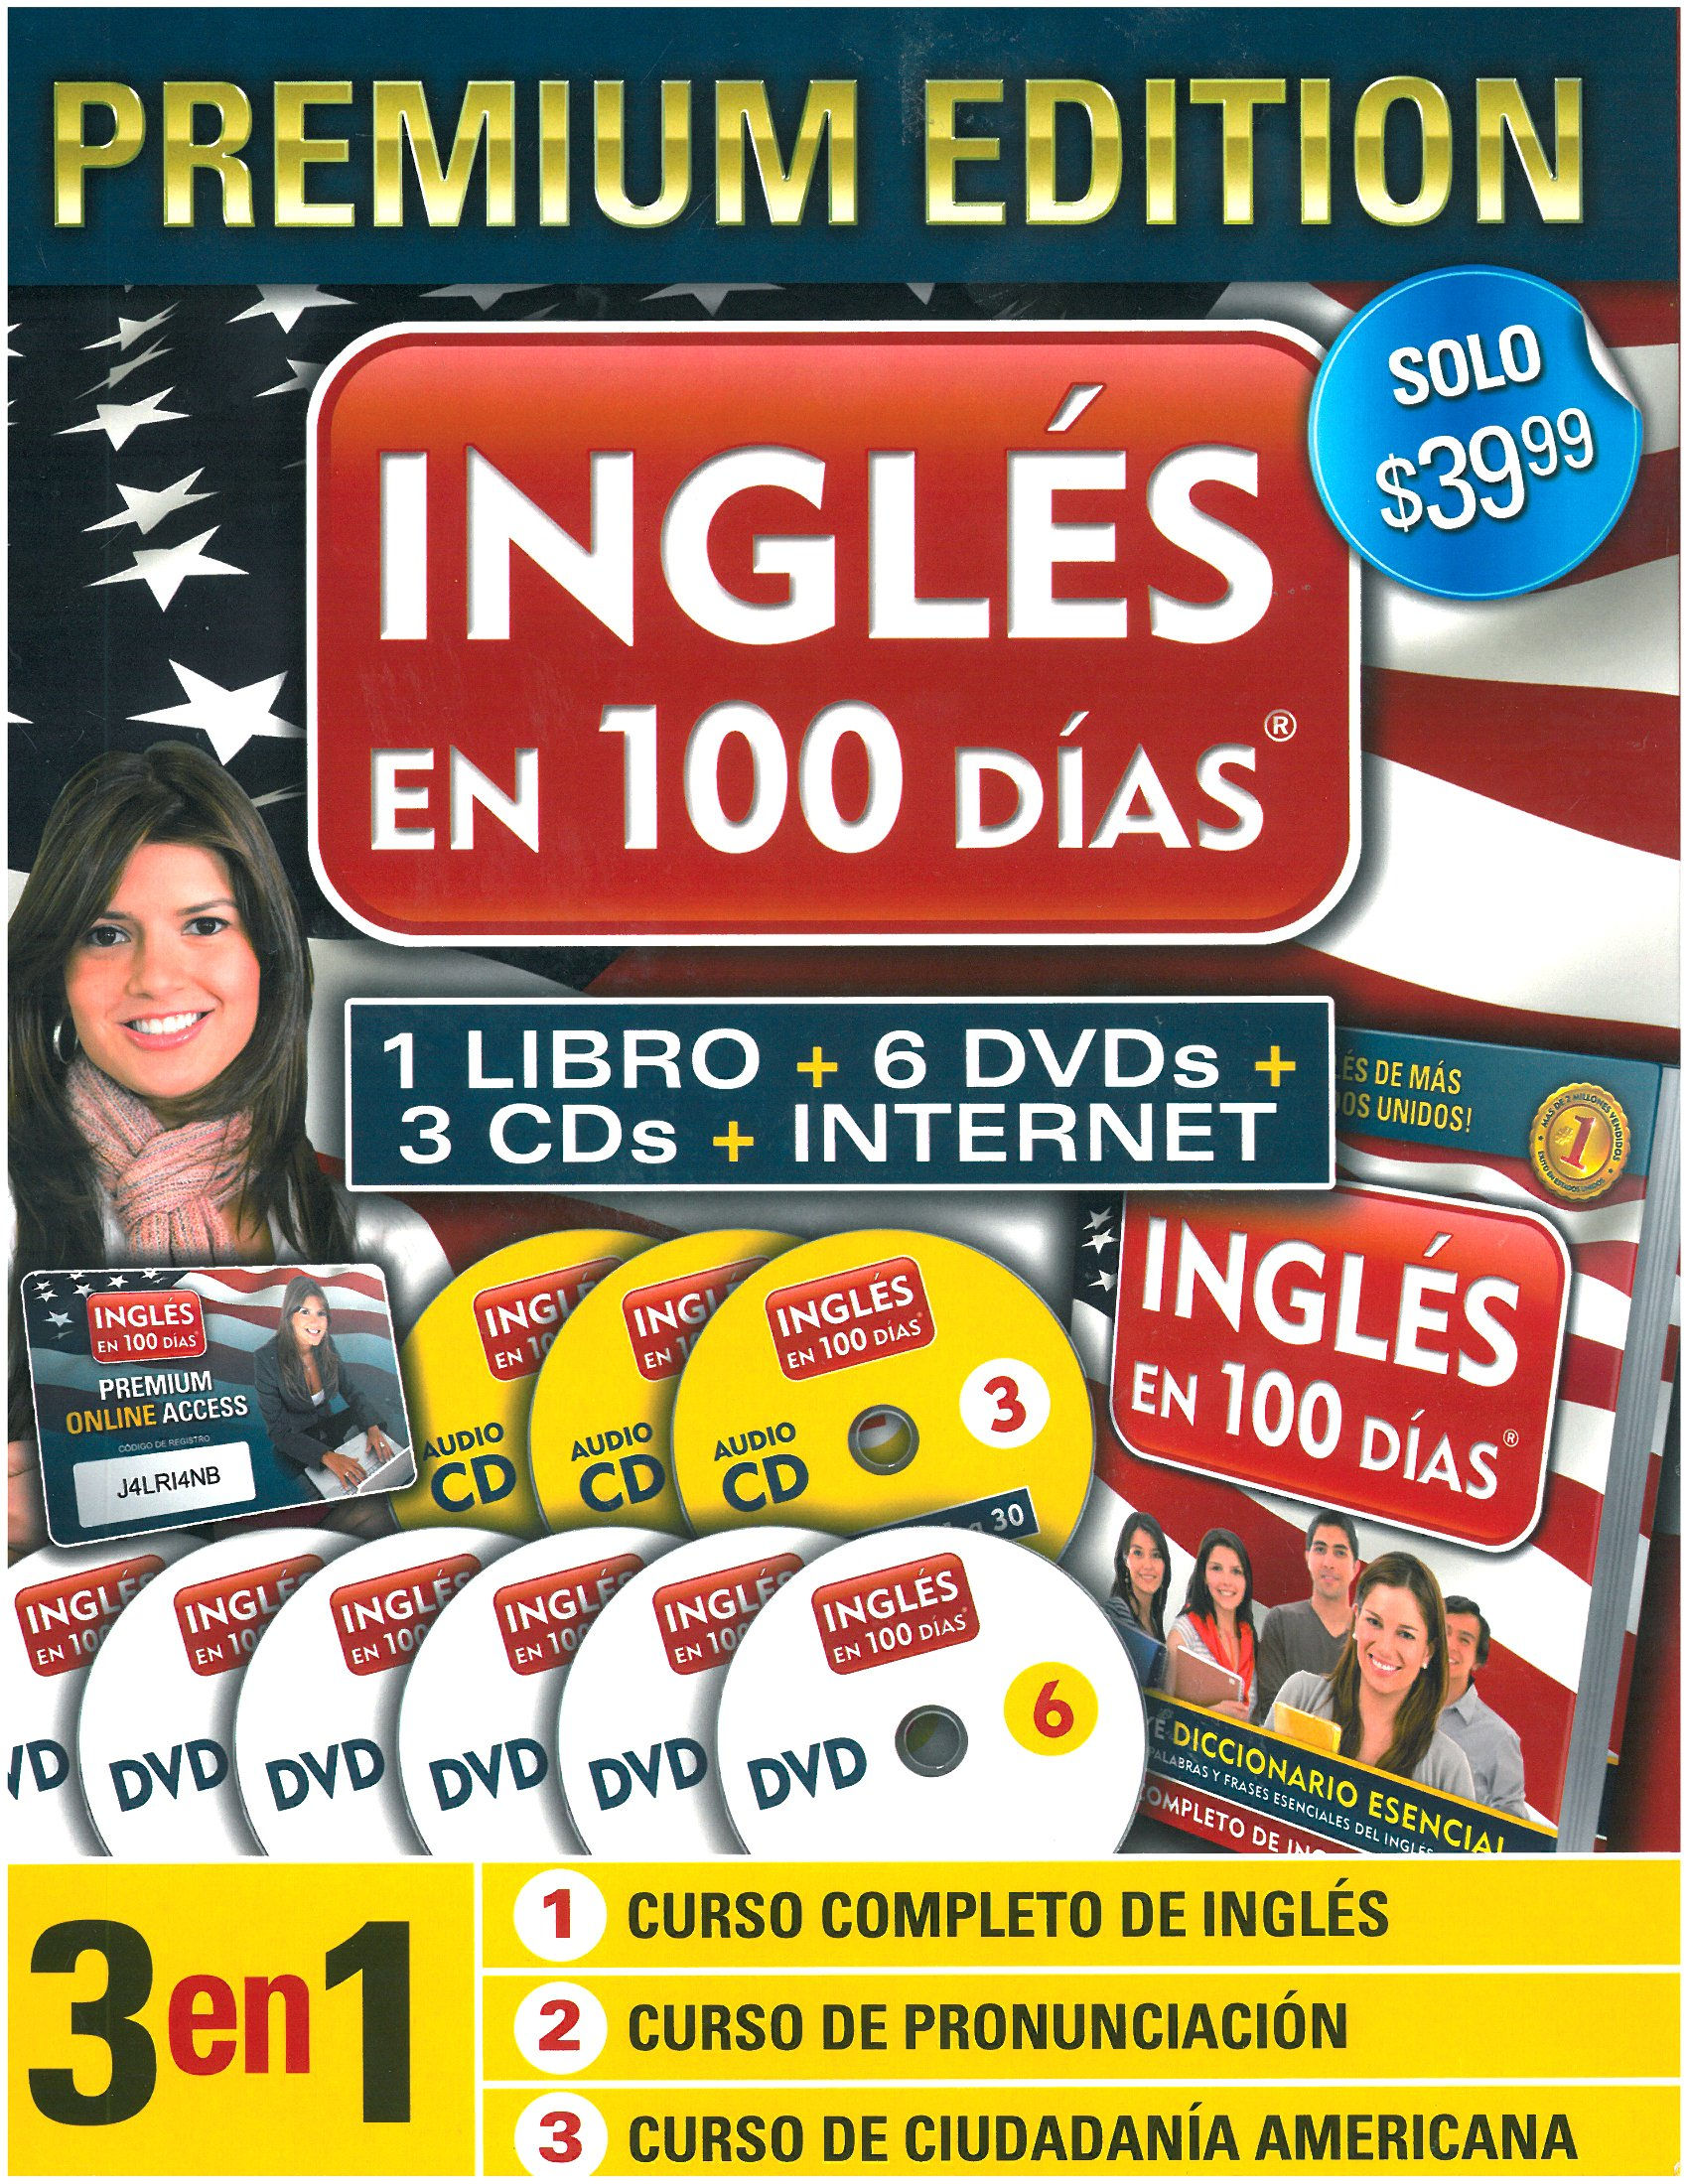 Ingles english Curso Completo Spanish product image